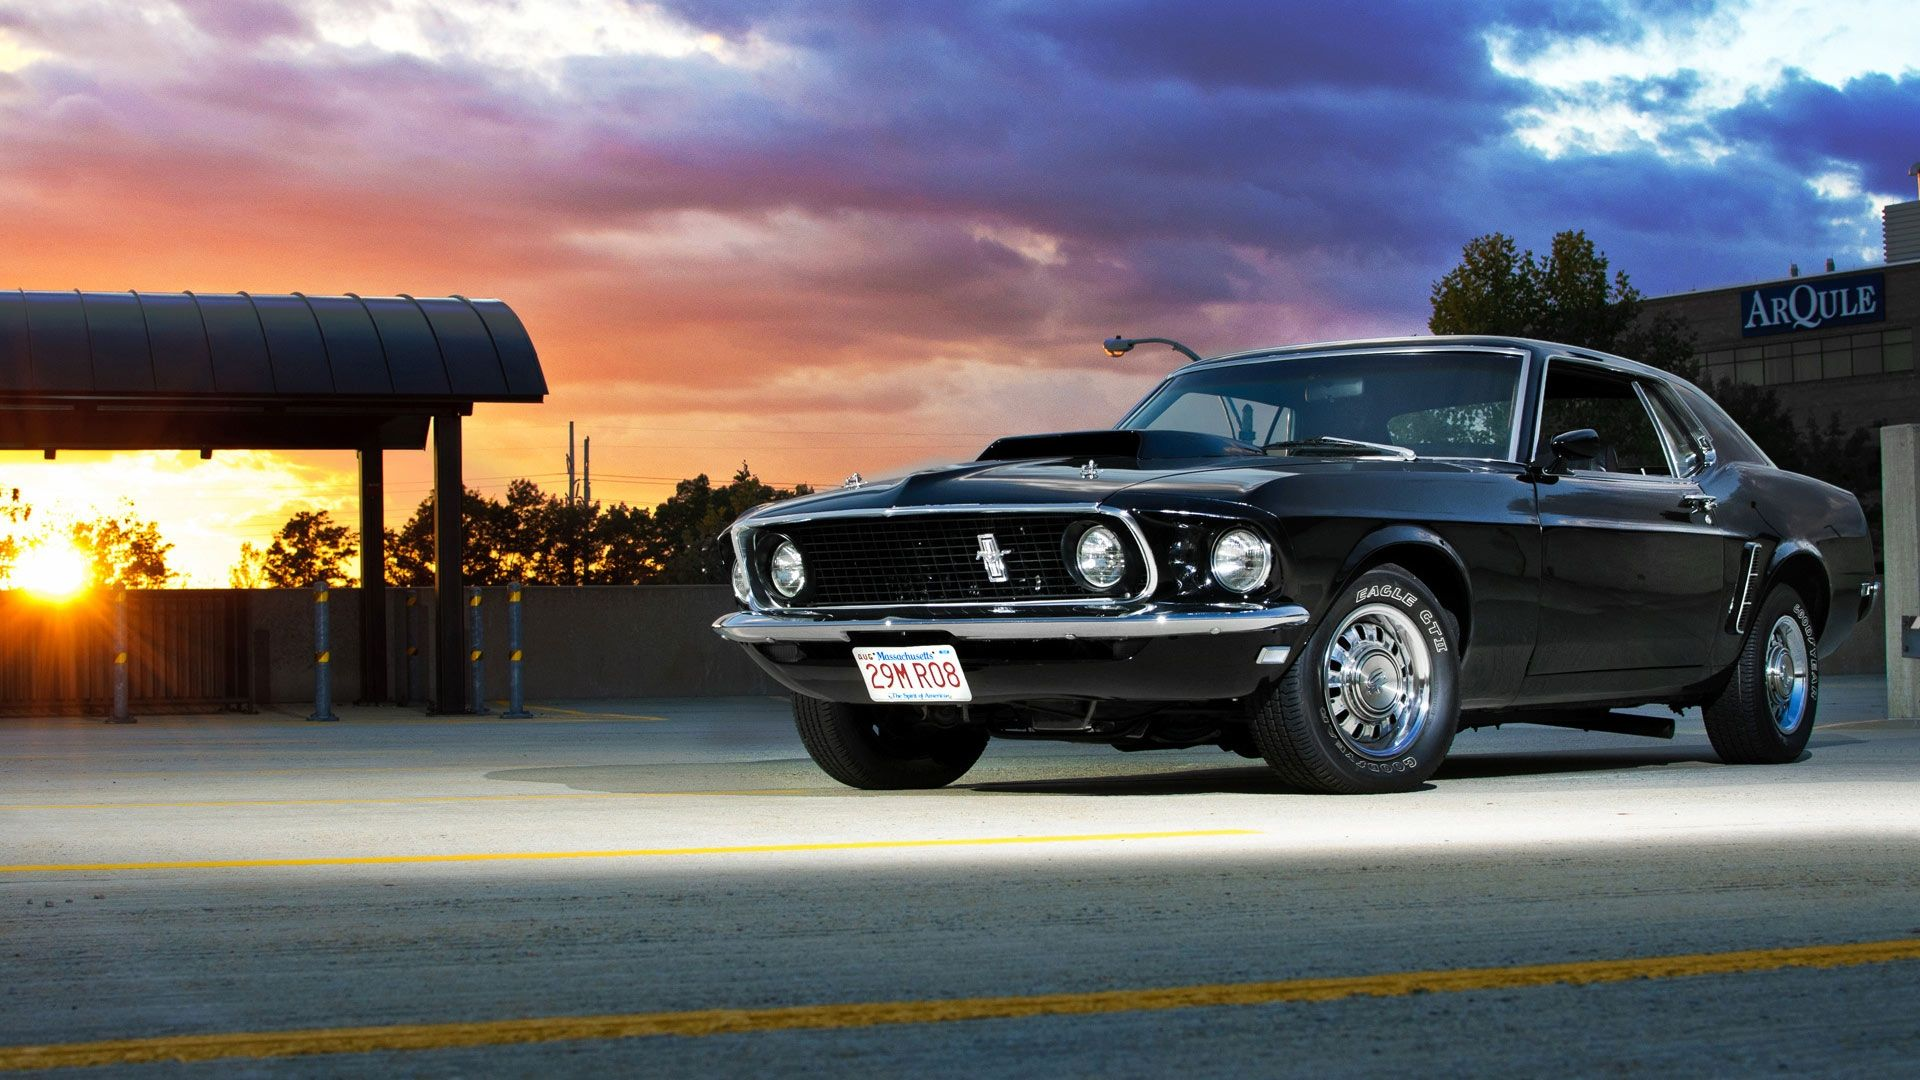 Mustang Wallpapers 1920 X 1080 Mustang Wallpaper Ford